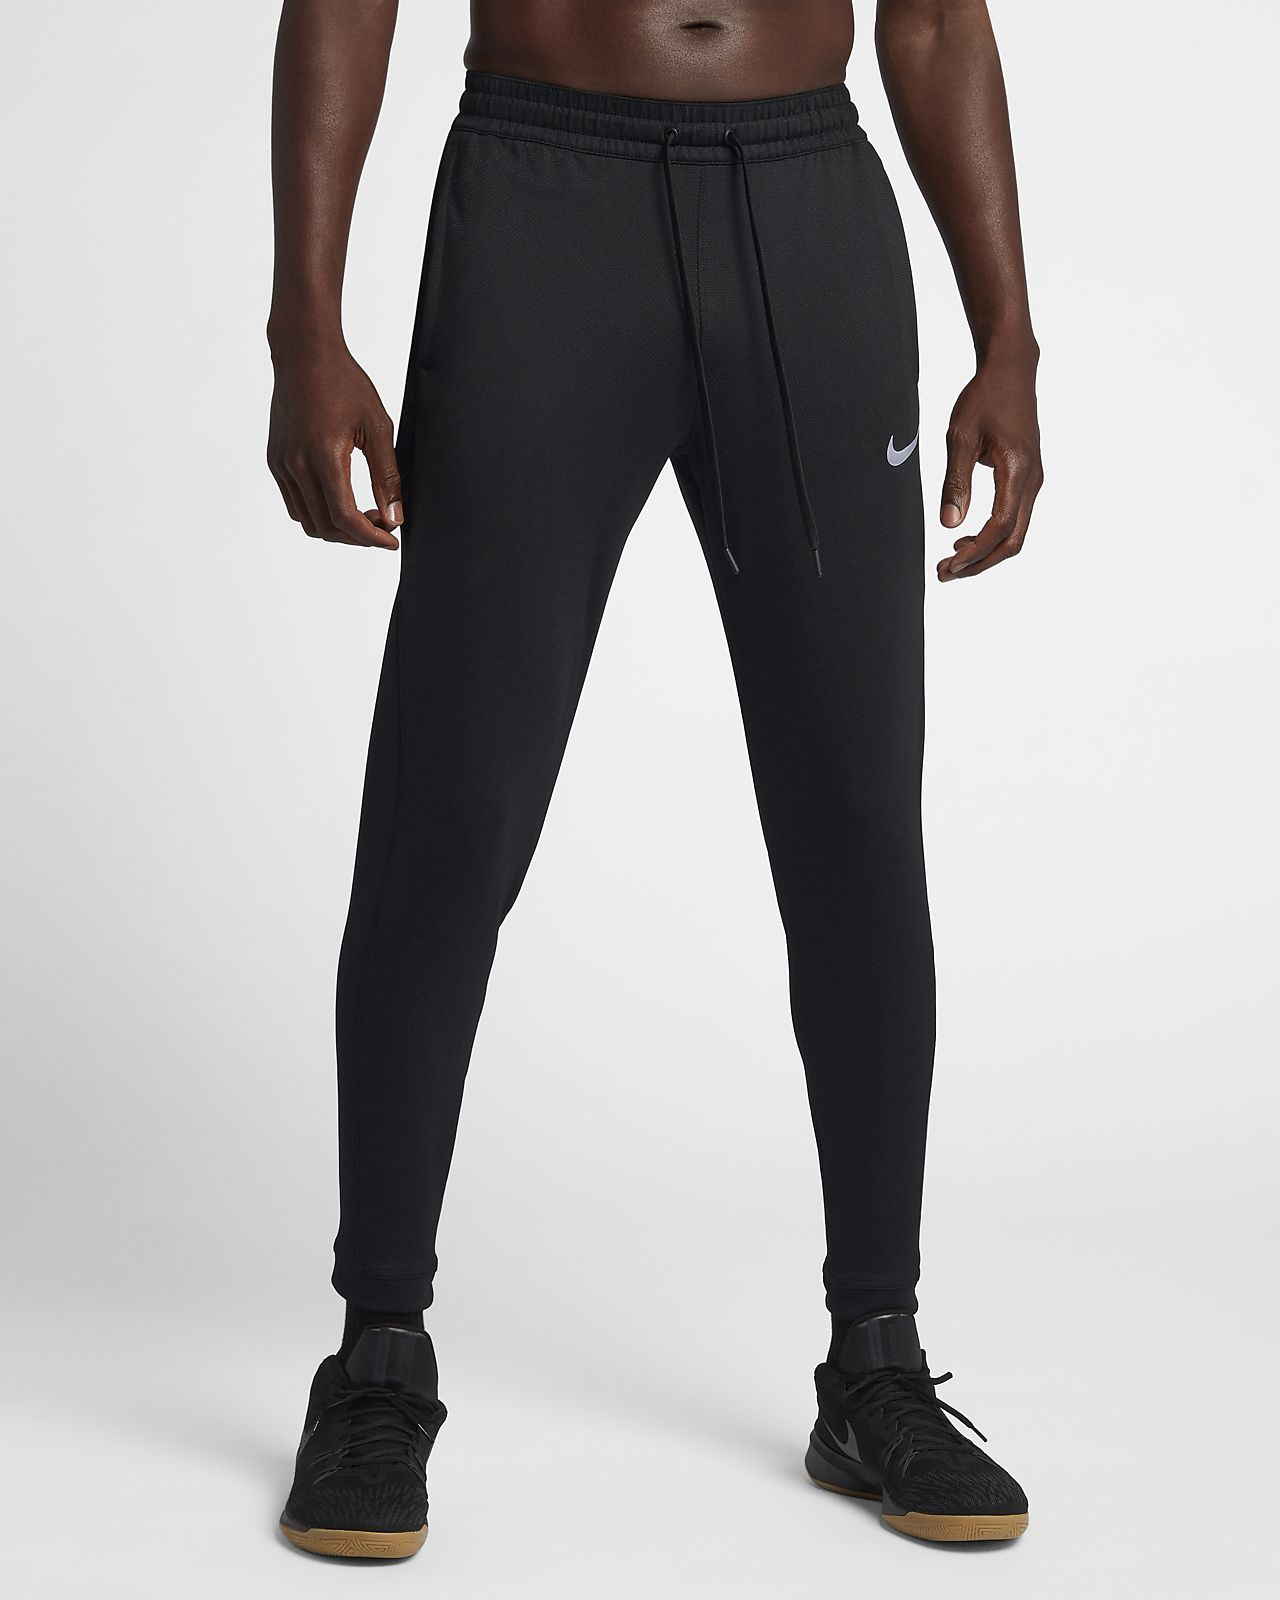 3c889a49d732 Nike Therma Flex Showtime Men s Basketball Pants. Nike.com